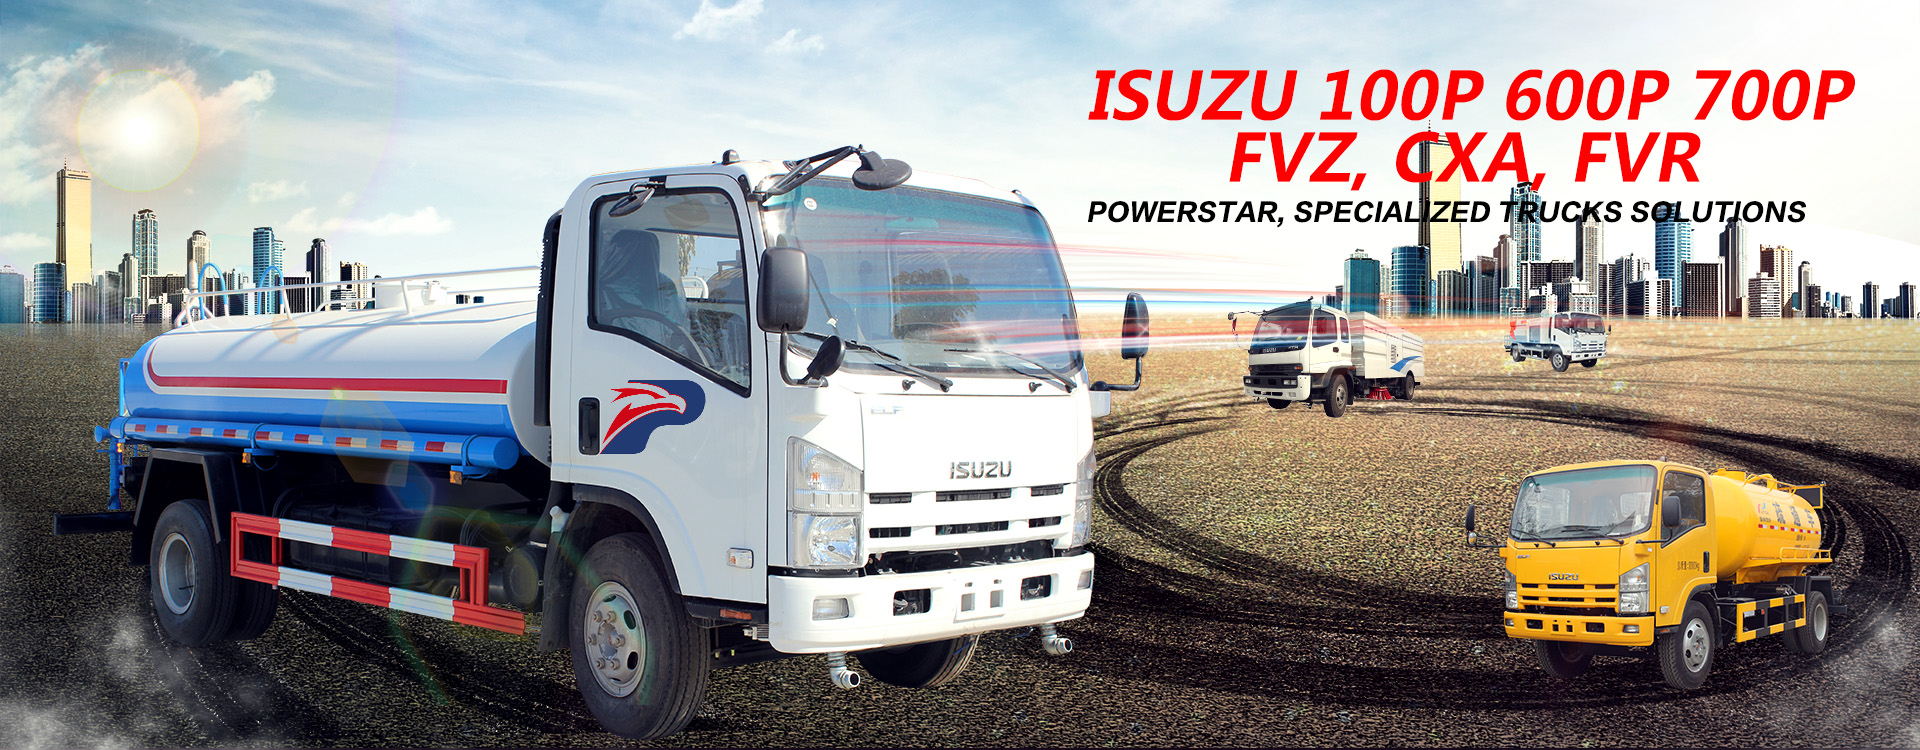 Water jetting truck Isuzu high pressure jetting vehicle